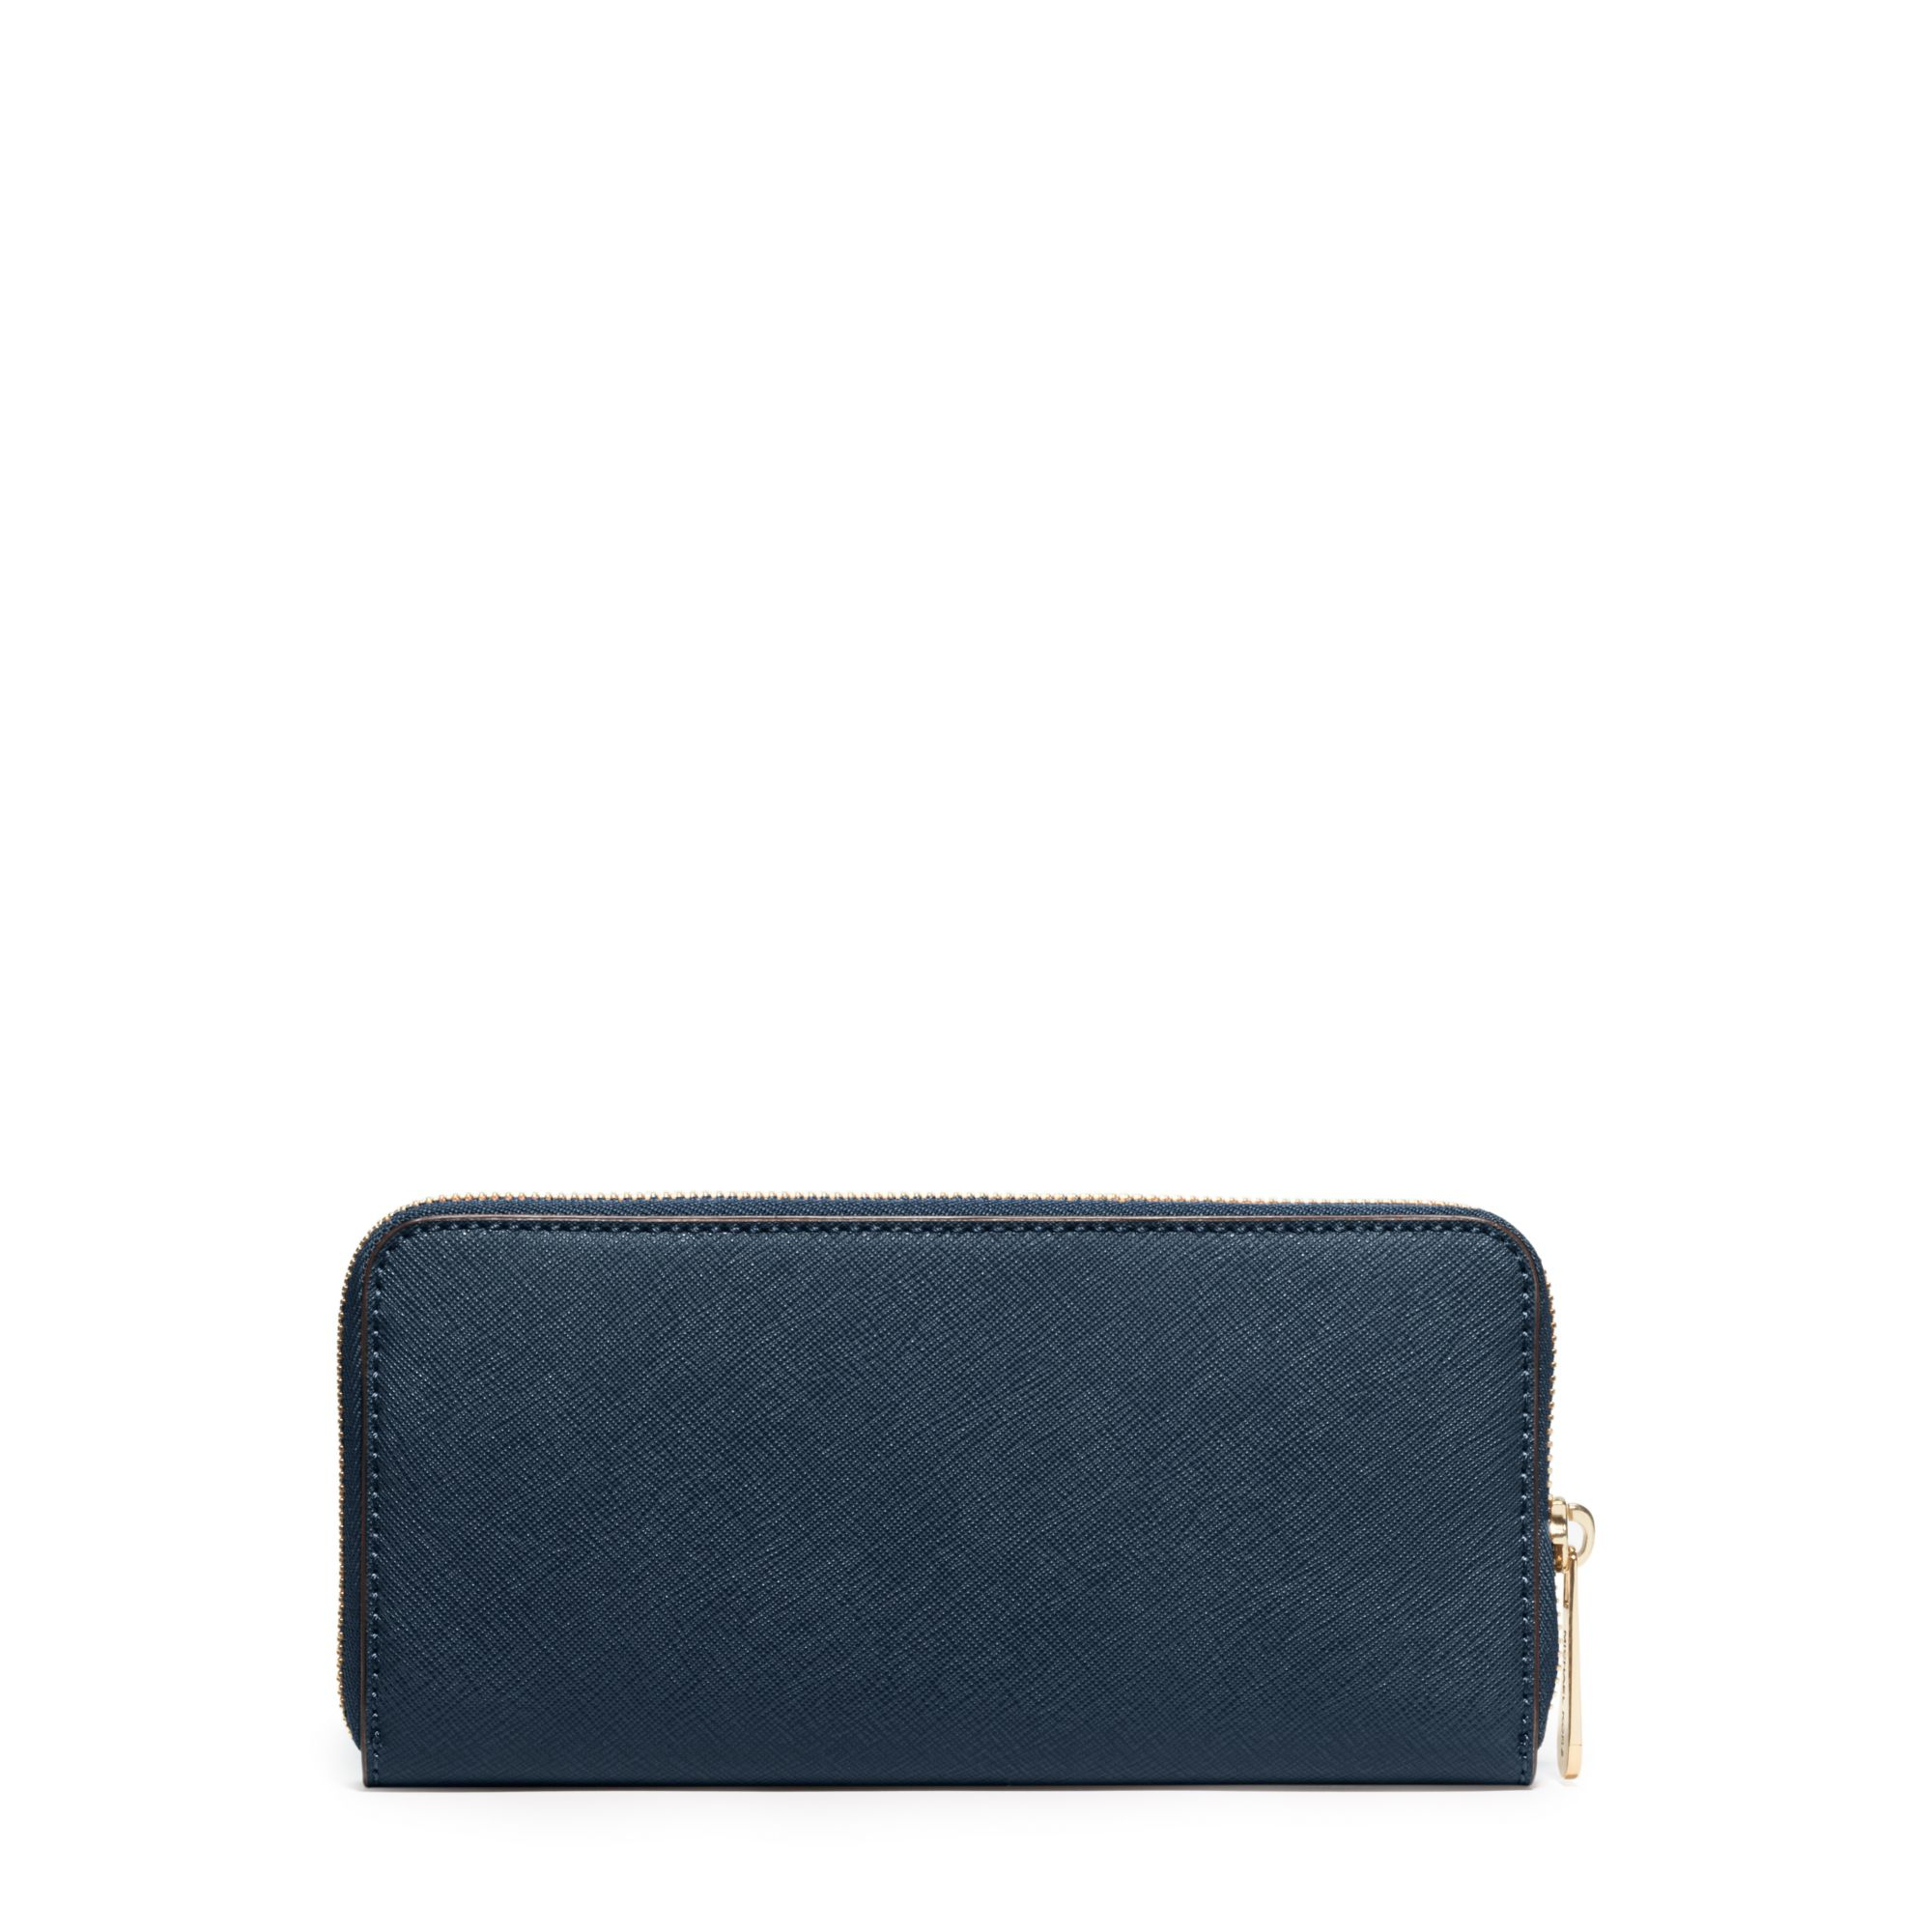 Michael Kors Jet Set Travel Saffiano Leather Continental Wallet In Blue For Men Lyst